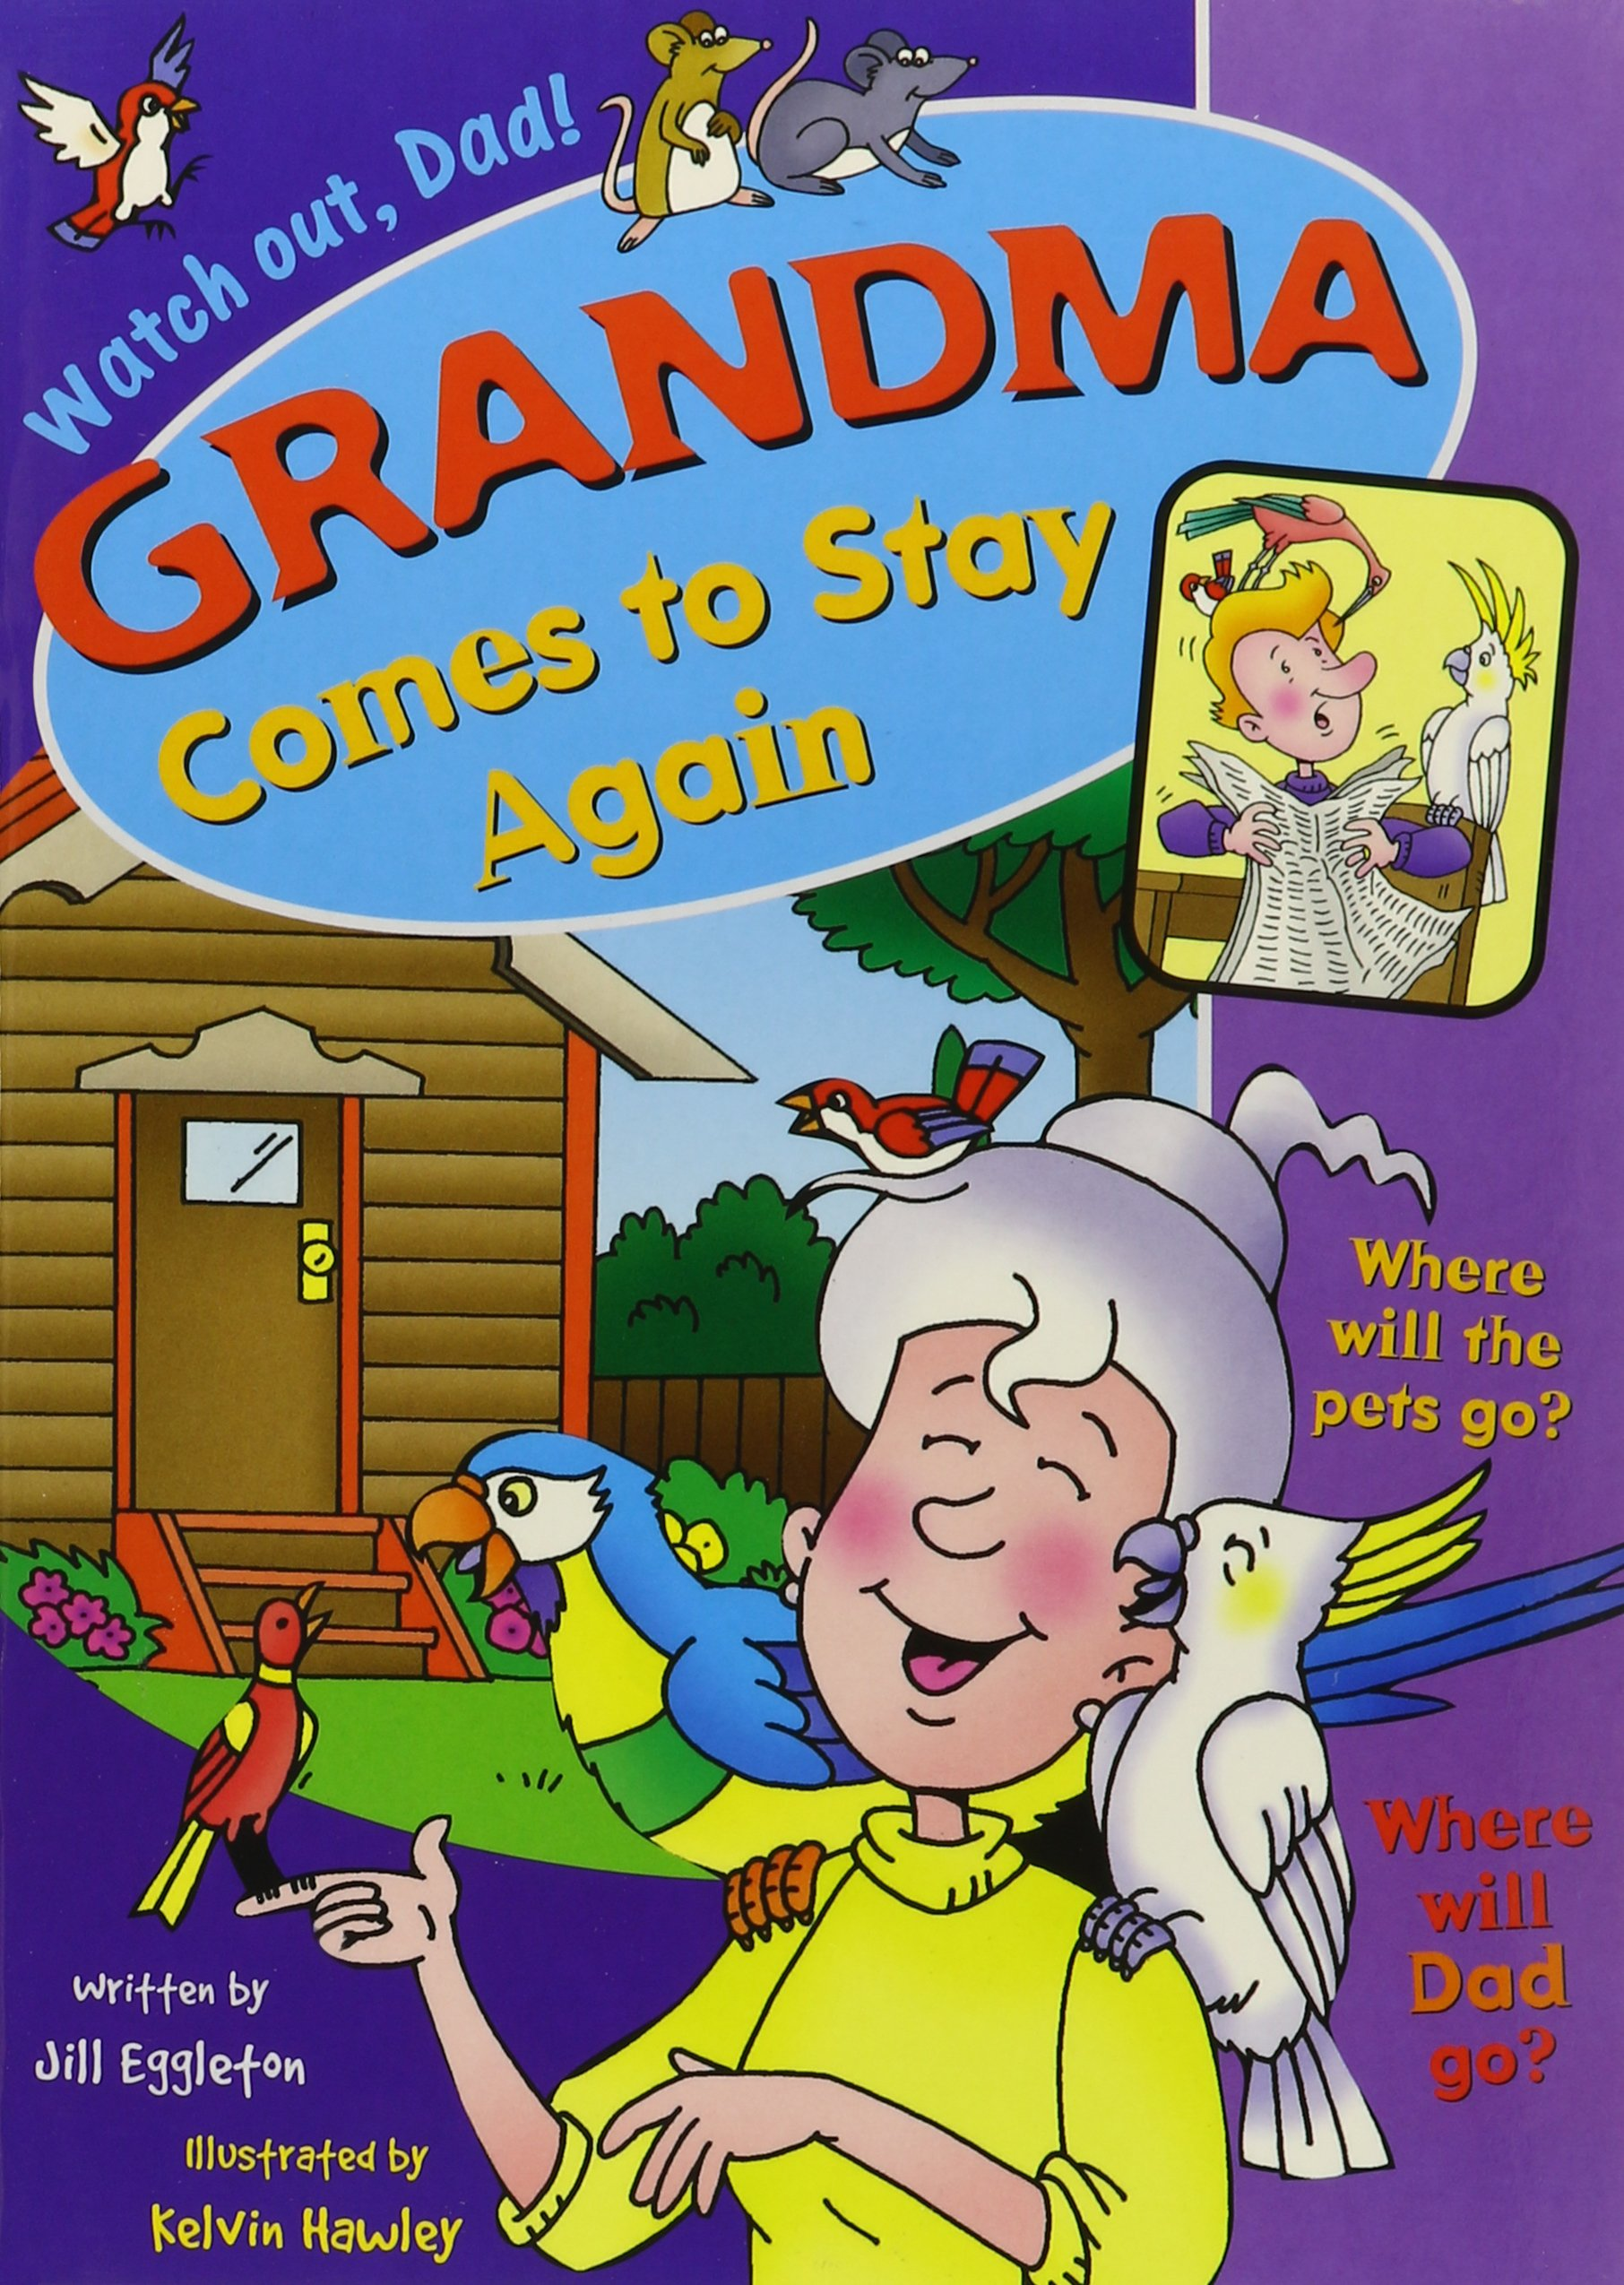 Download Rigby Sails Sailing Solo: Leveled Reader 6pk Blue Grandma Comes To Stay Again pdf